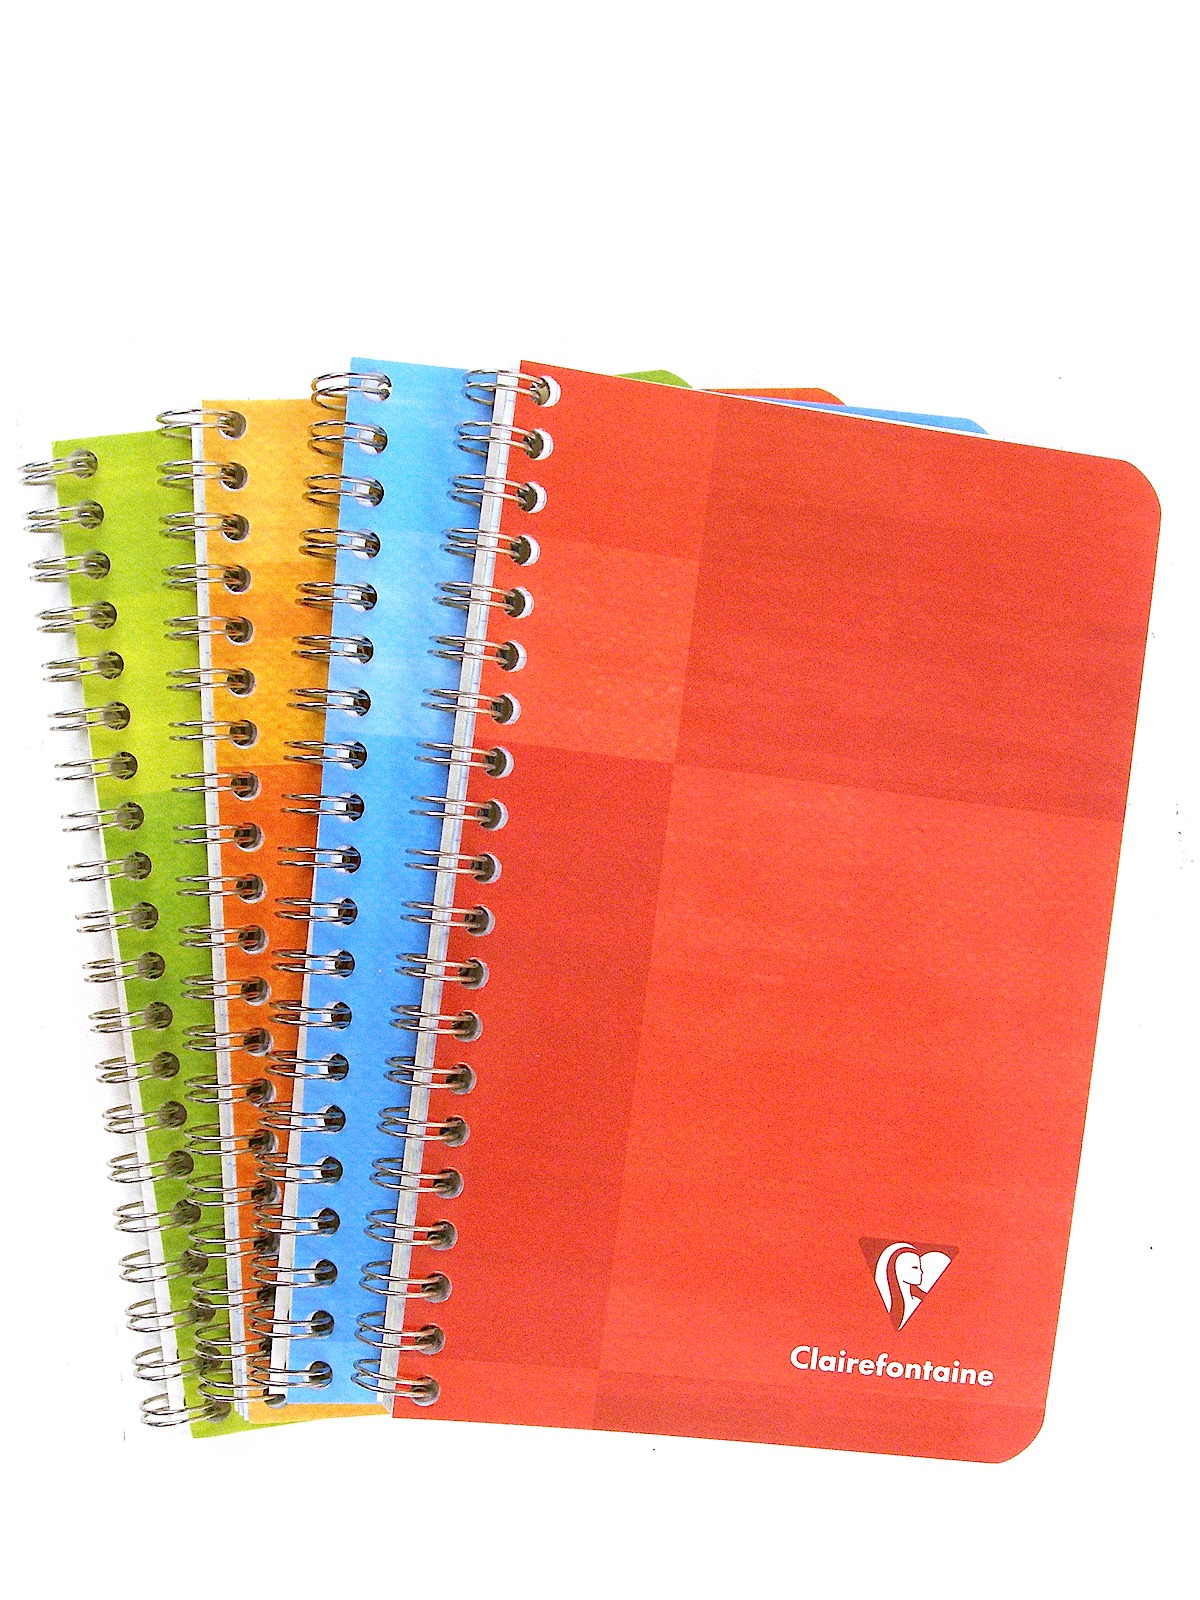 clairefontaine wirebound multiple subject graph paper